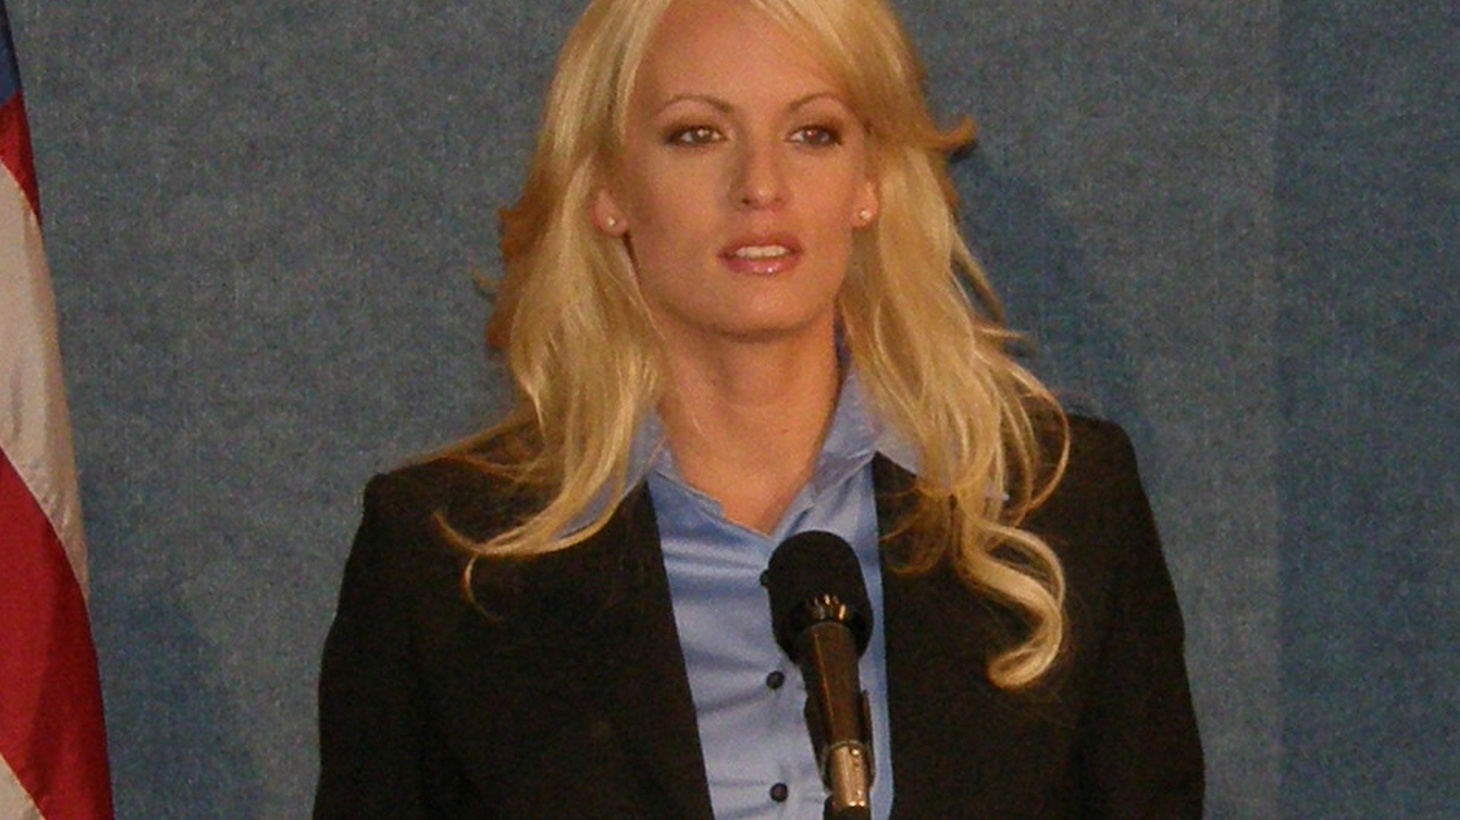 It's been a while since we talked about Stormy Daniels and all of her lawsuits.